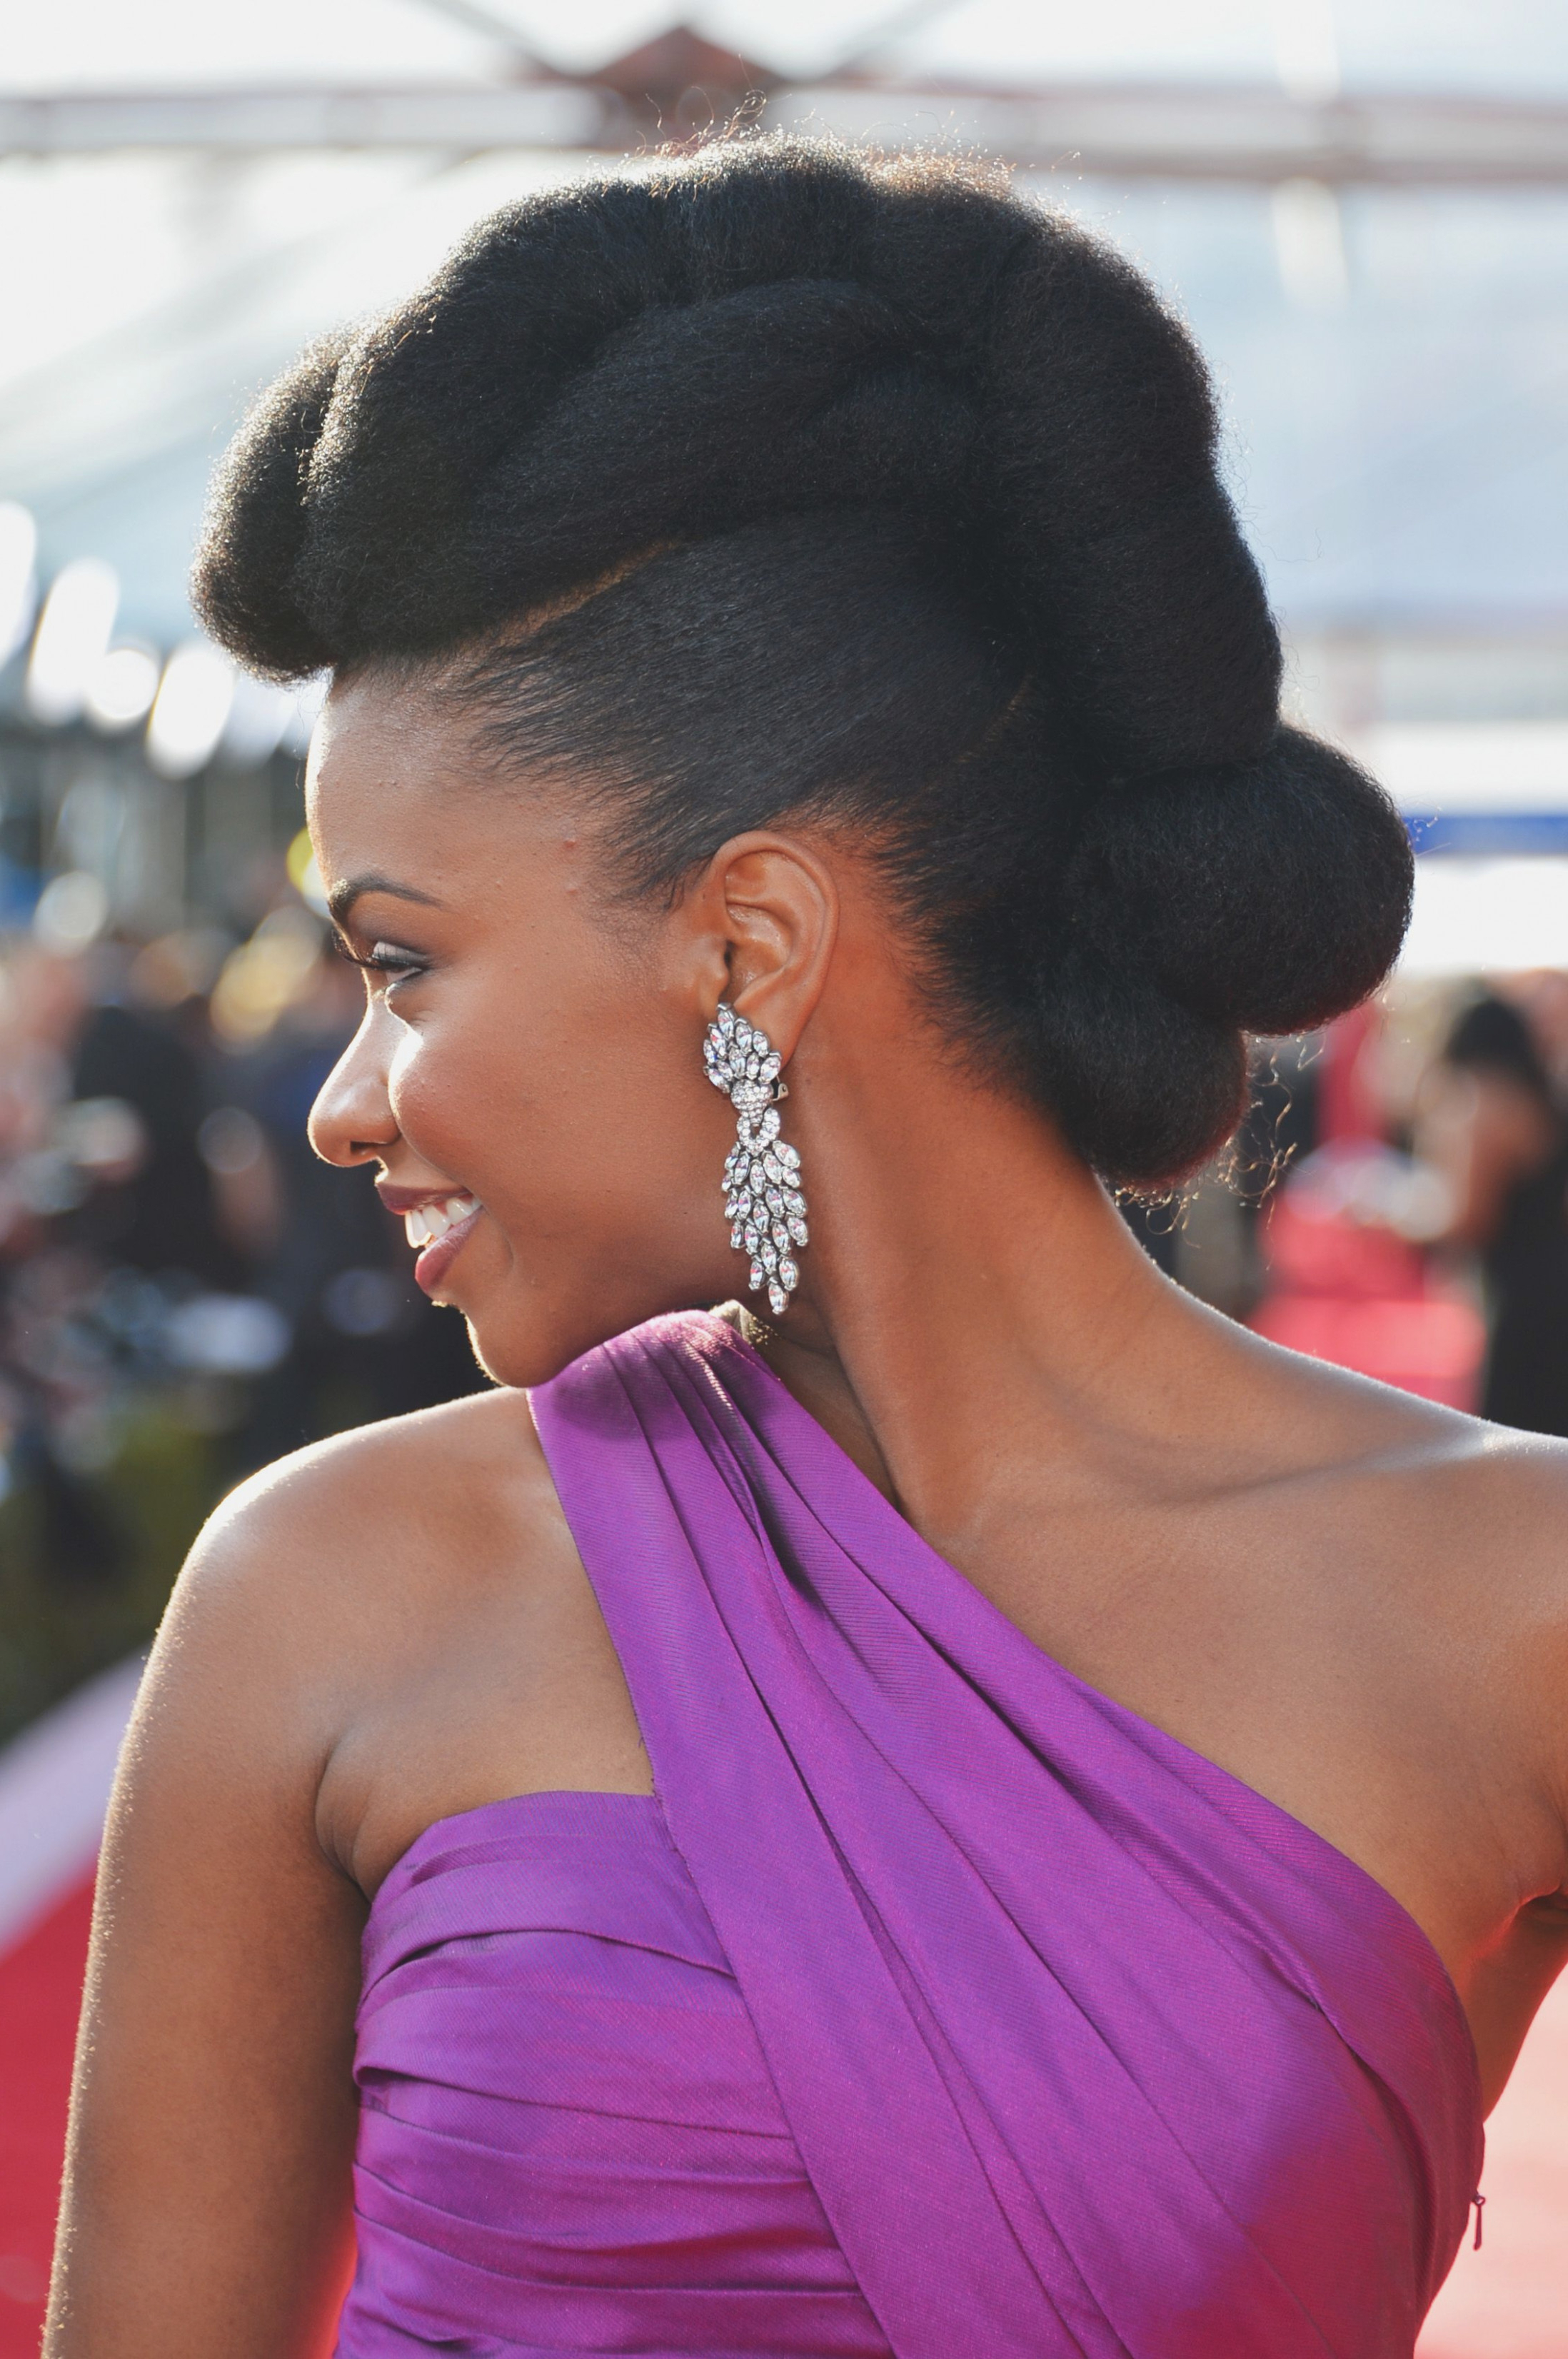 16 Easy Natural Hairstyles For Black Women – Short, Medium – Twist For Recent Medium Haircuts For Natural Hair Black Women (View 18 of 20)